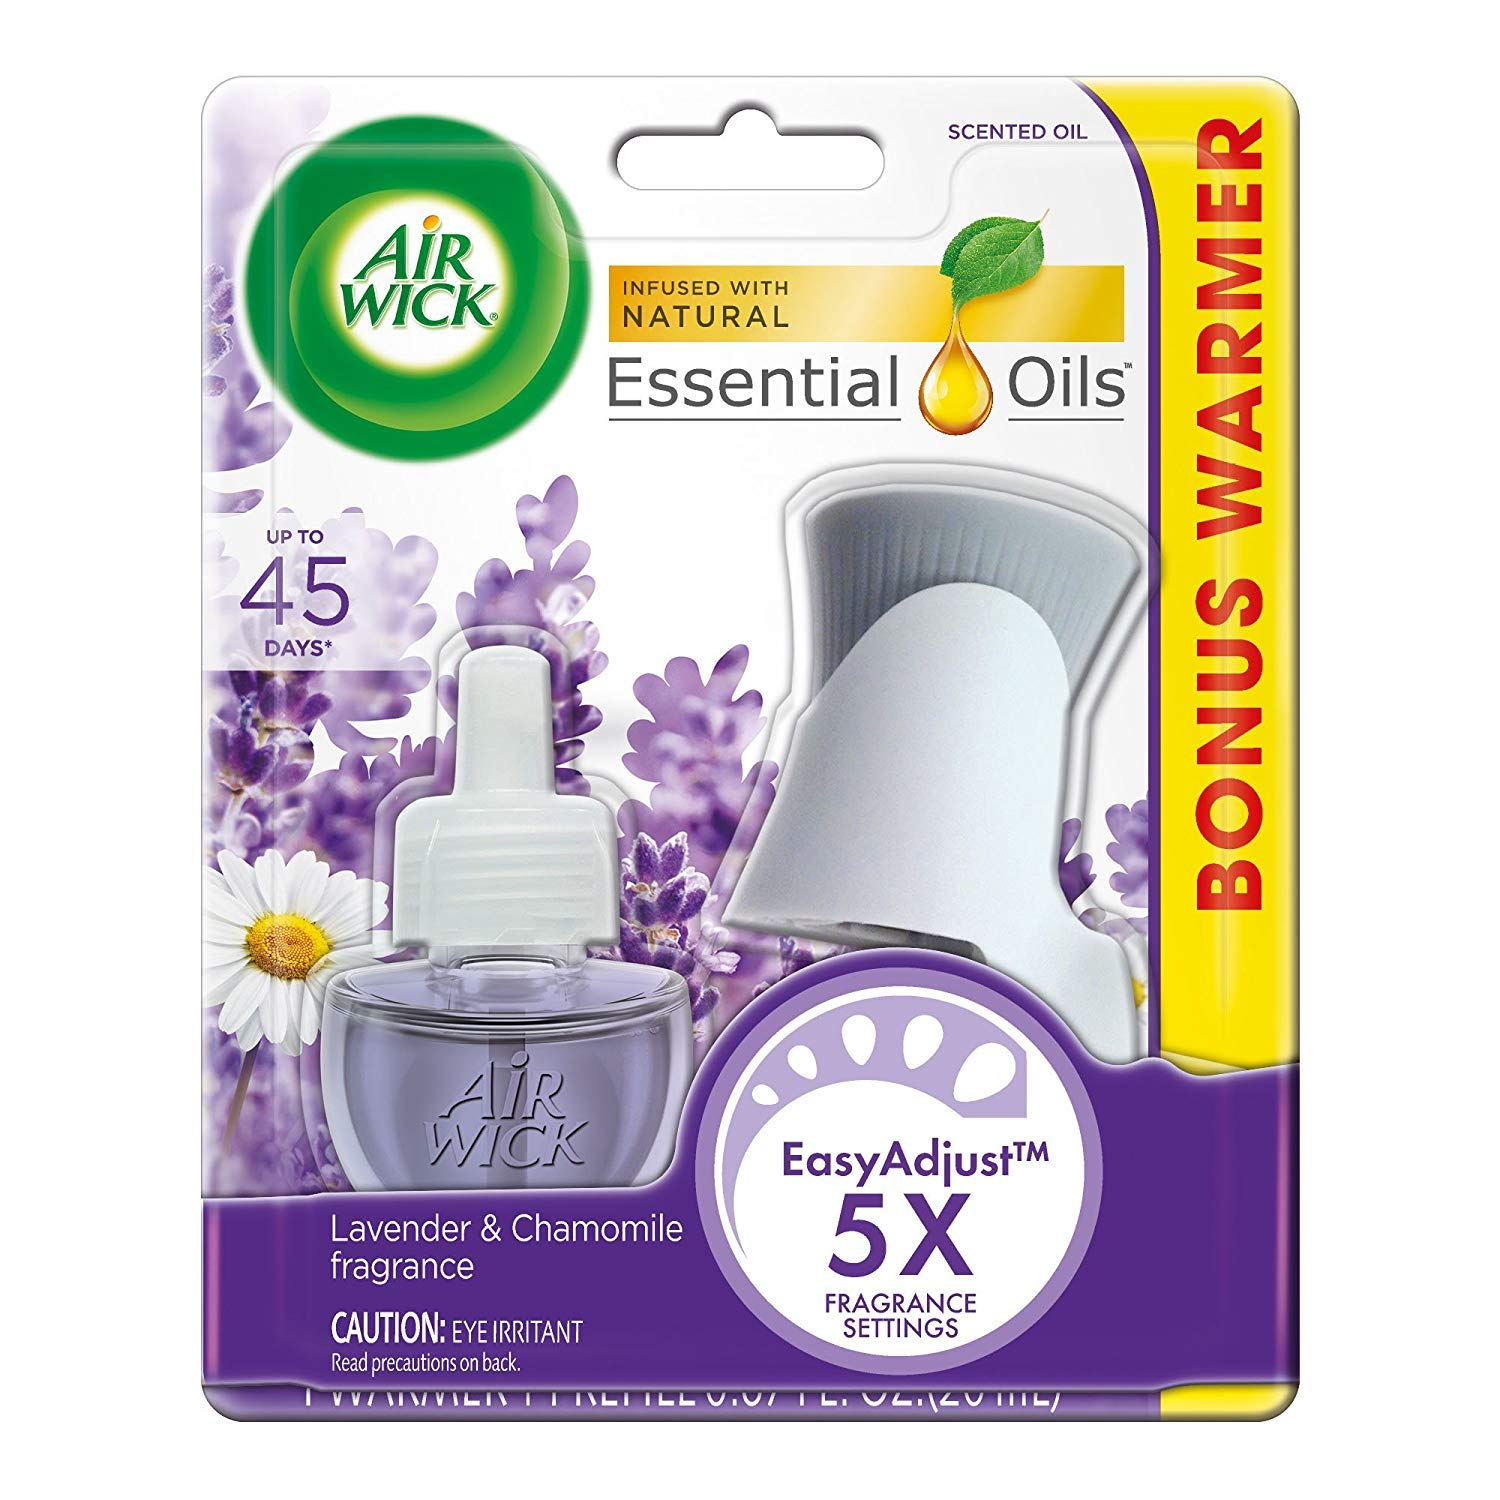 Air Wick Scented Oil Starter Kit